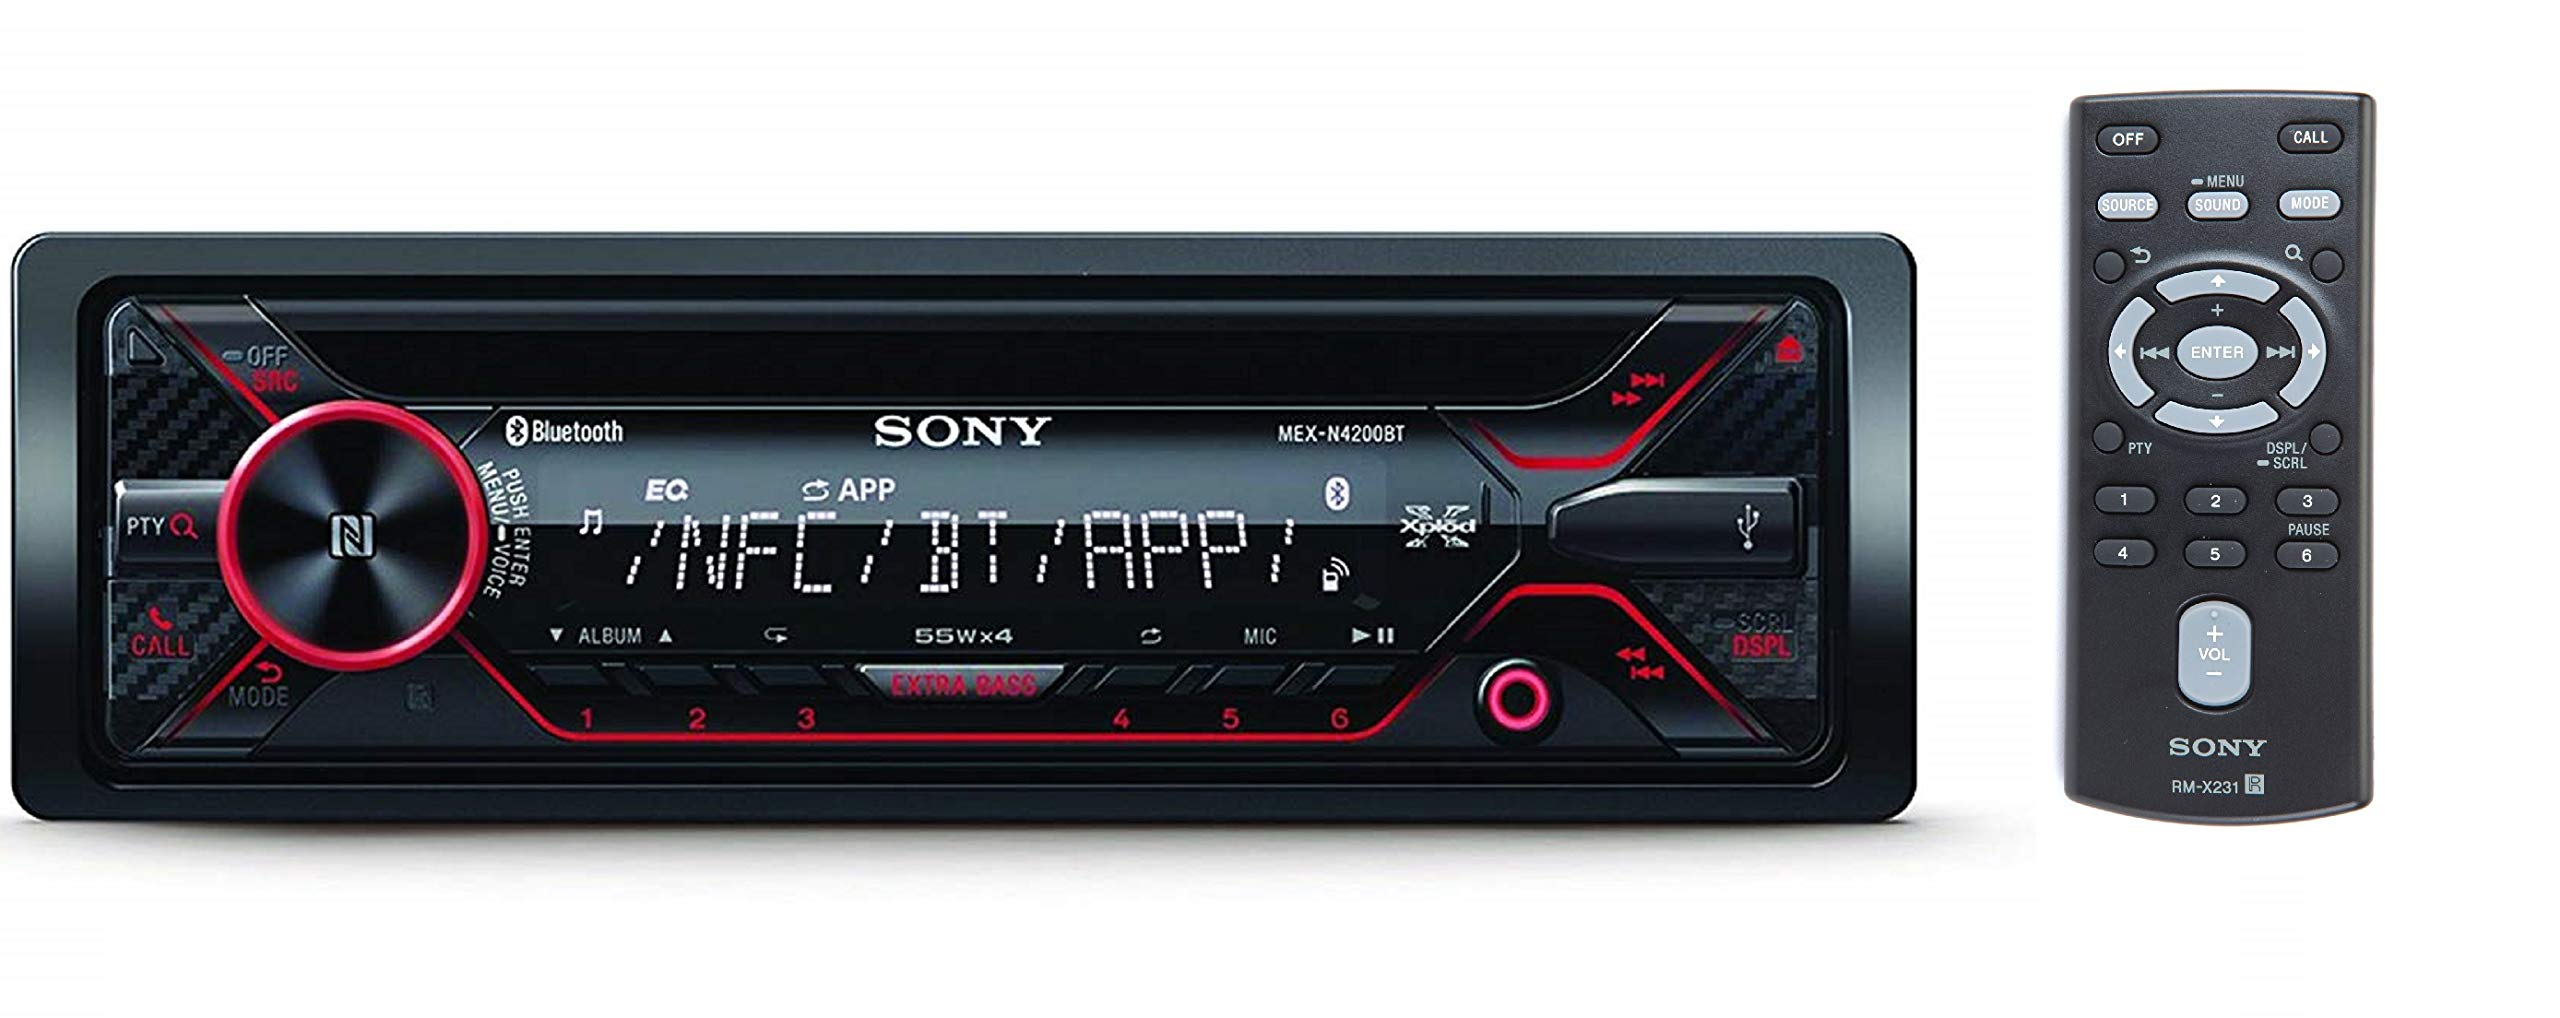 Sony MEXN5000BT CD Car Stereo Receiver with Bluetooth Discontinued by Manufacturer NFC Pairing /& App Remote SmartPhone Control